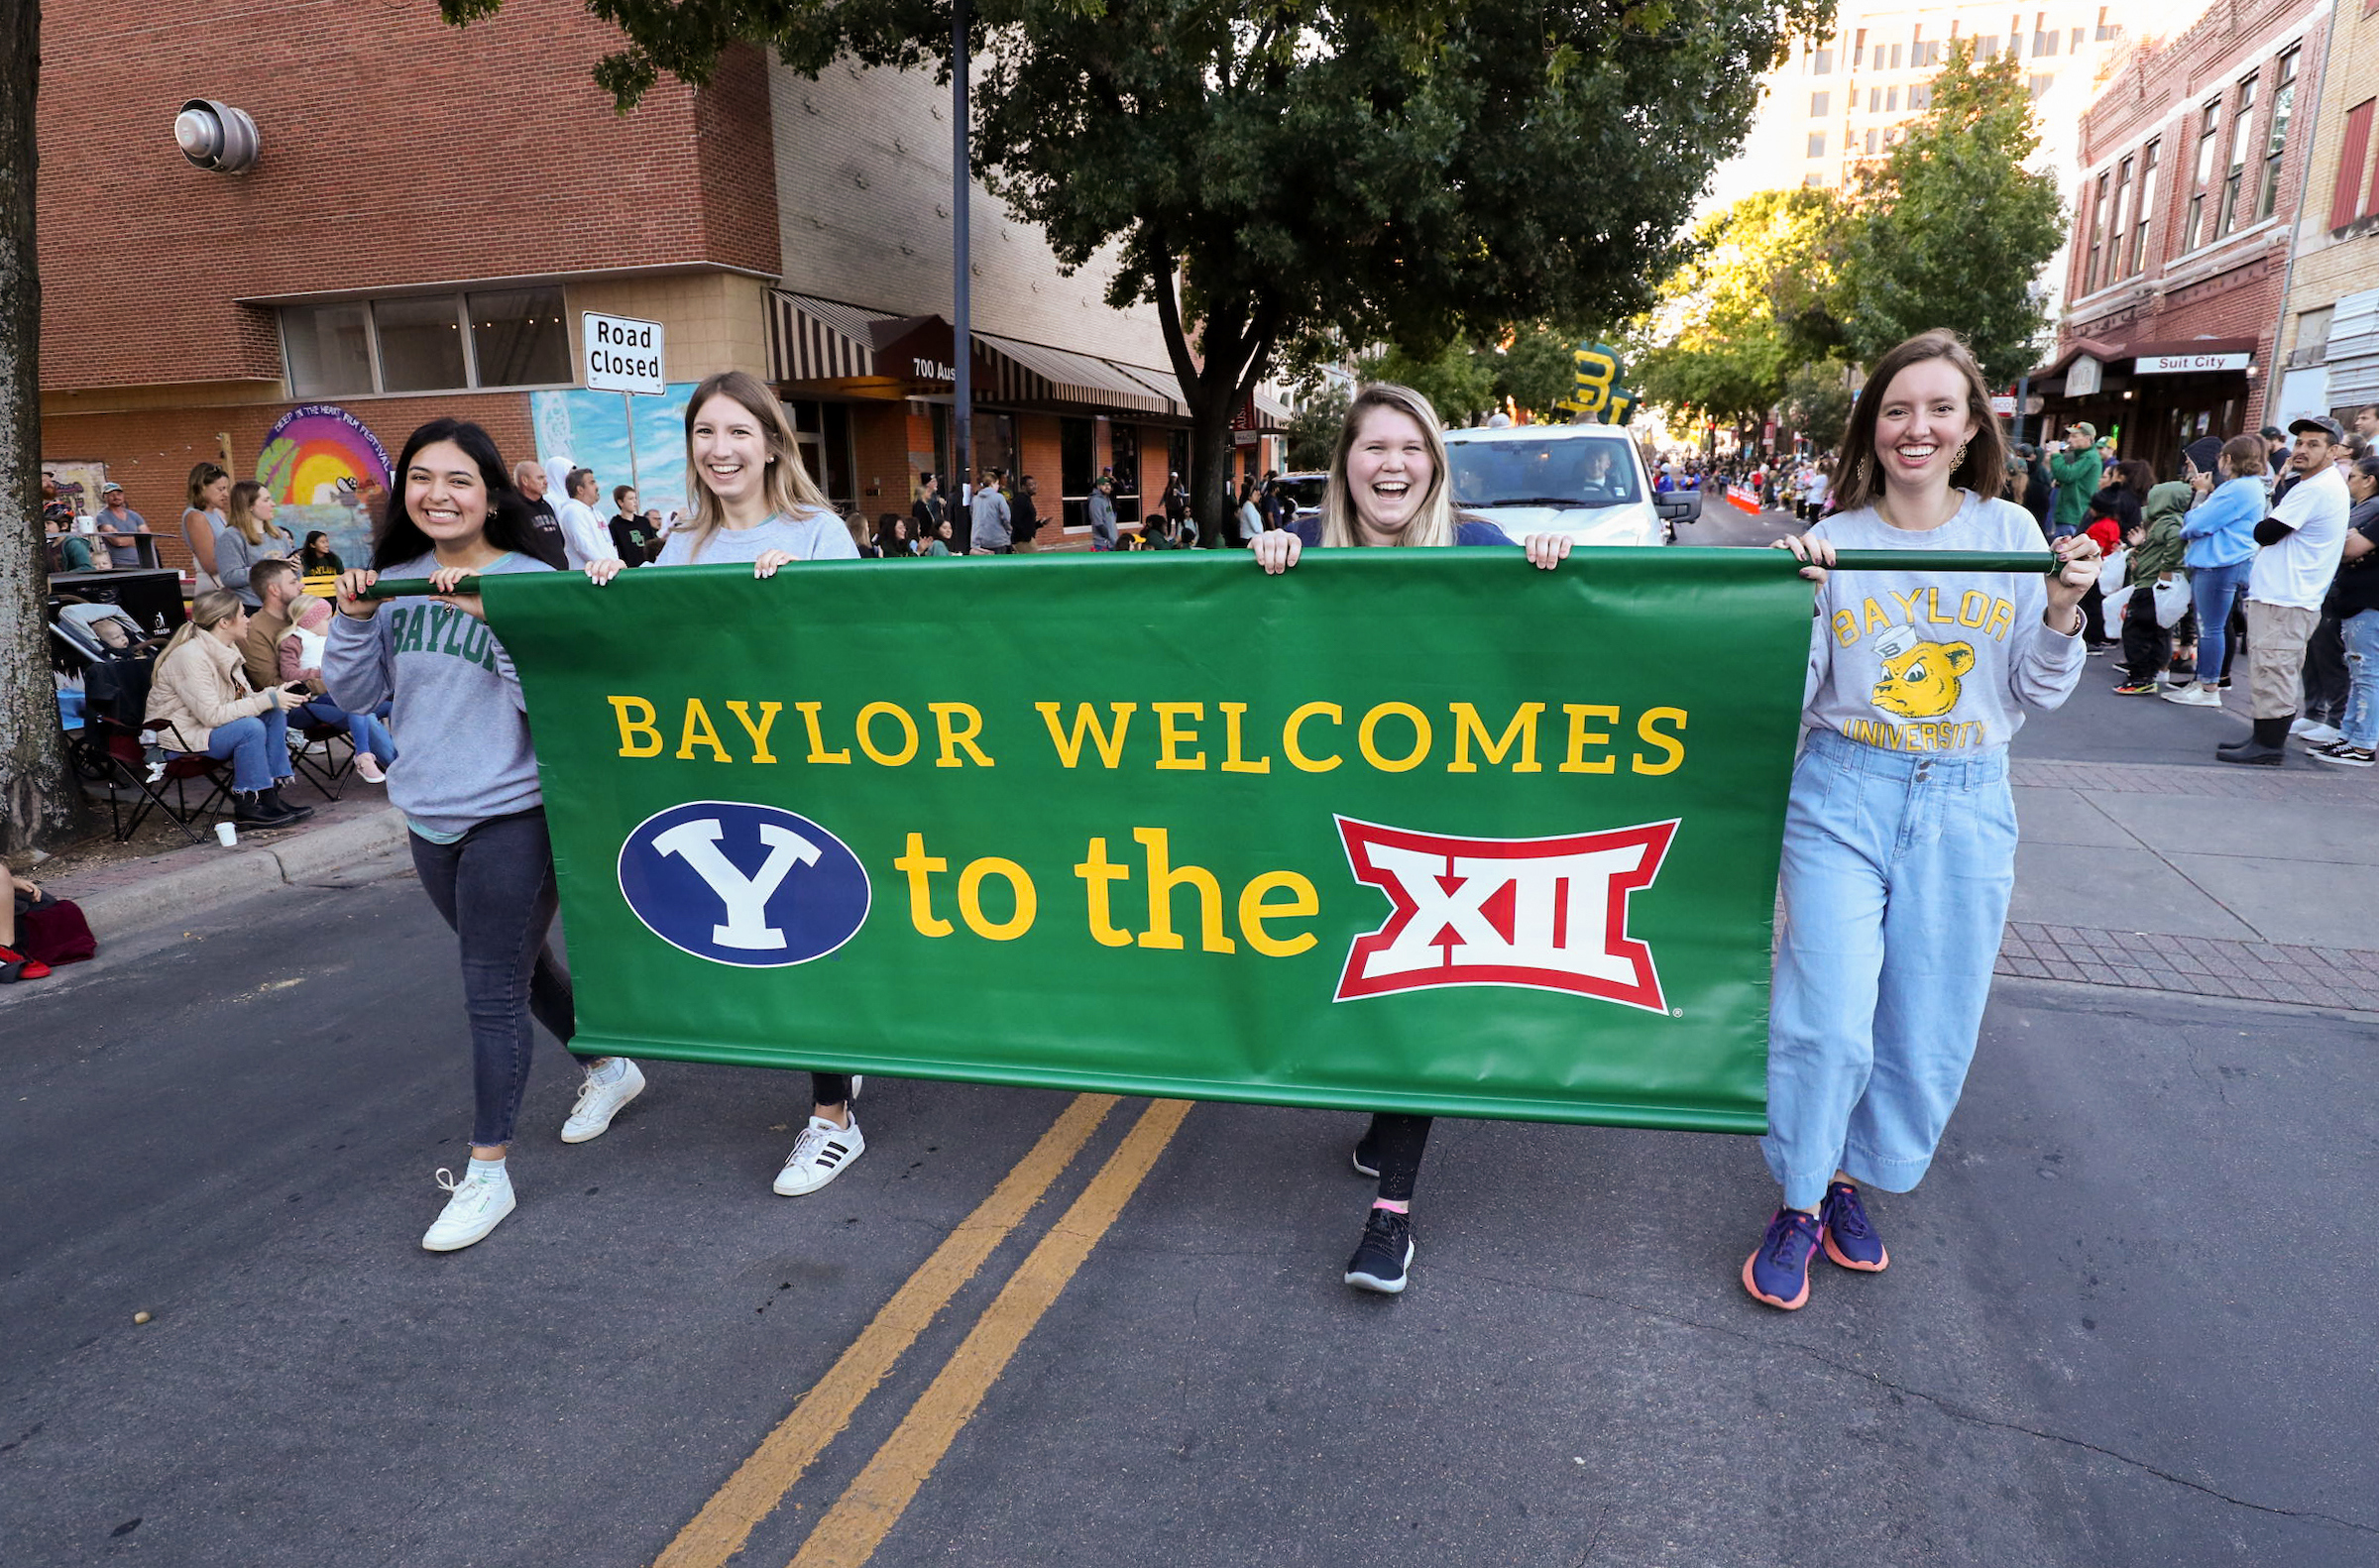 Baylor students carry a banner welcoming BYU during the homecoming parade in Waco, Texas, on Saturday, Oct. 16, 2021.